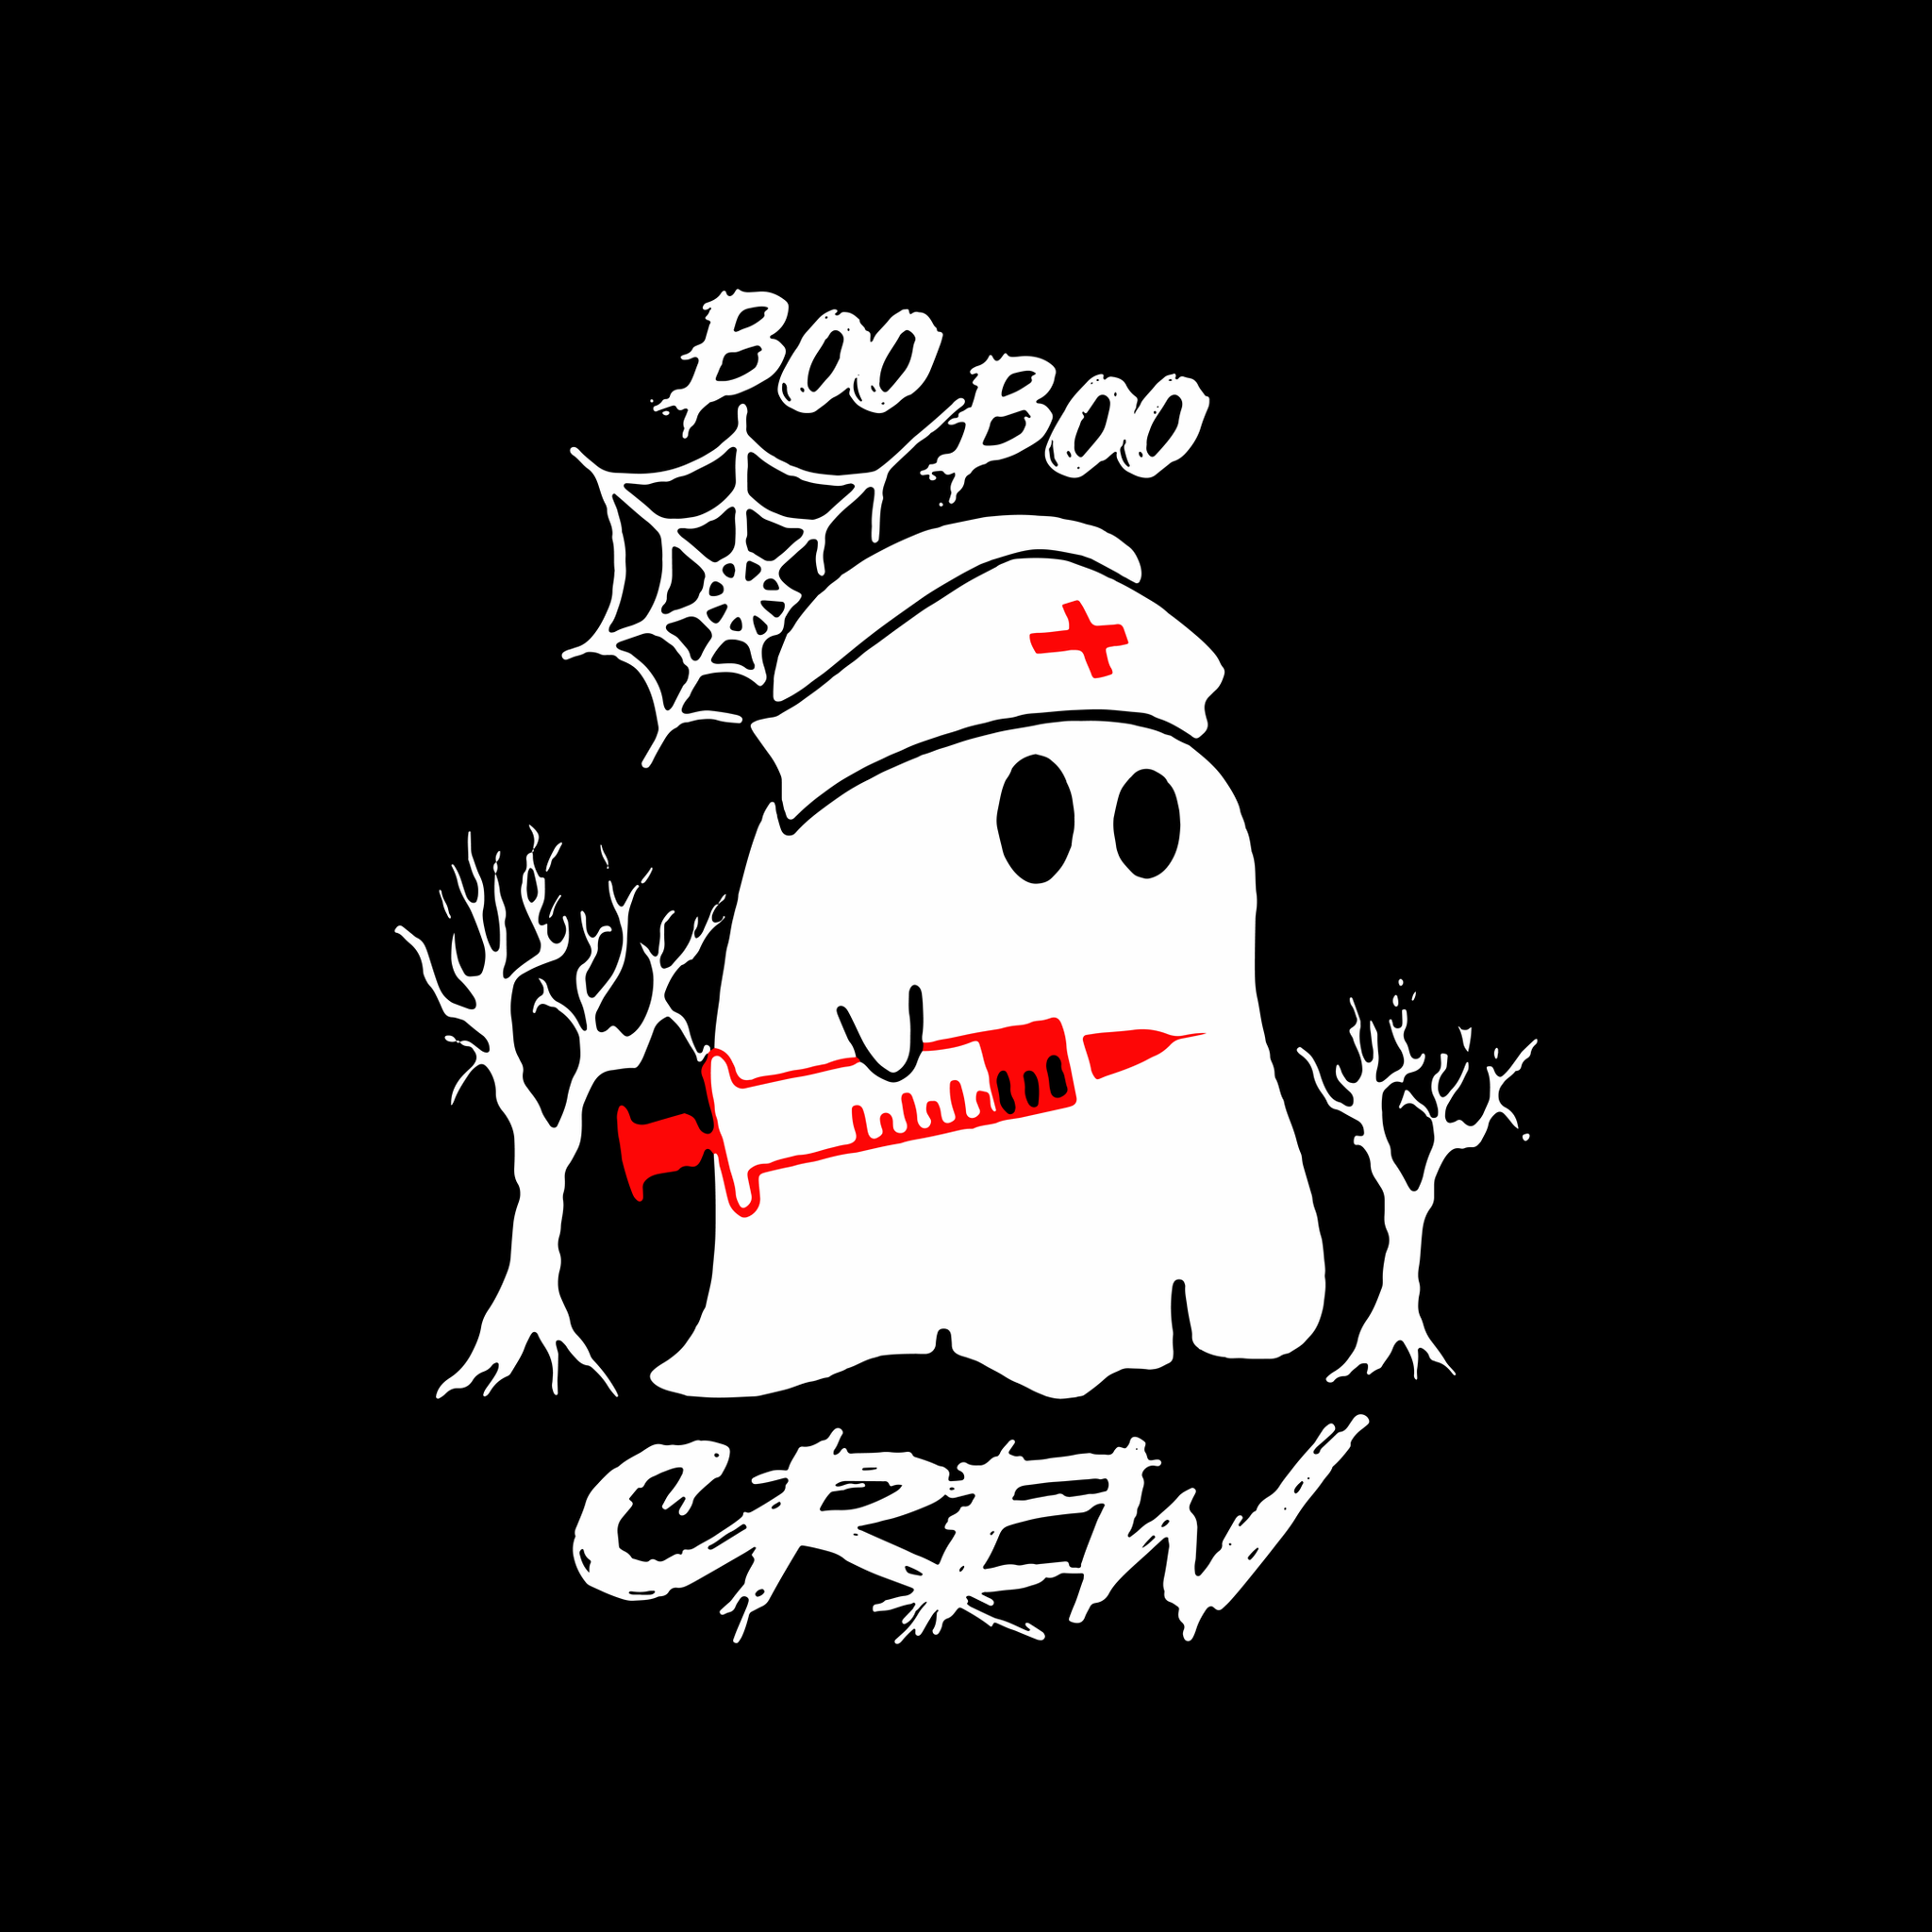 Boo boo crew, boo boo crew svg, boo boo crew tshirt,Boo bees svg, boo bees tshirt,boo bees png, boo bees,Boo Bees Couple halloween